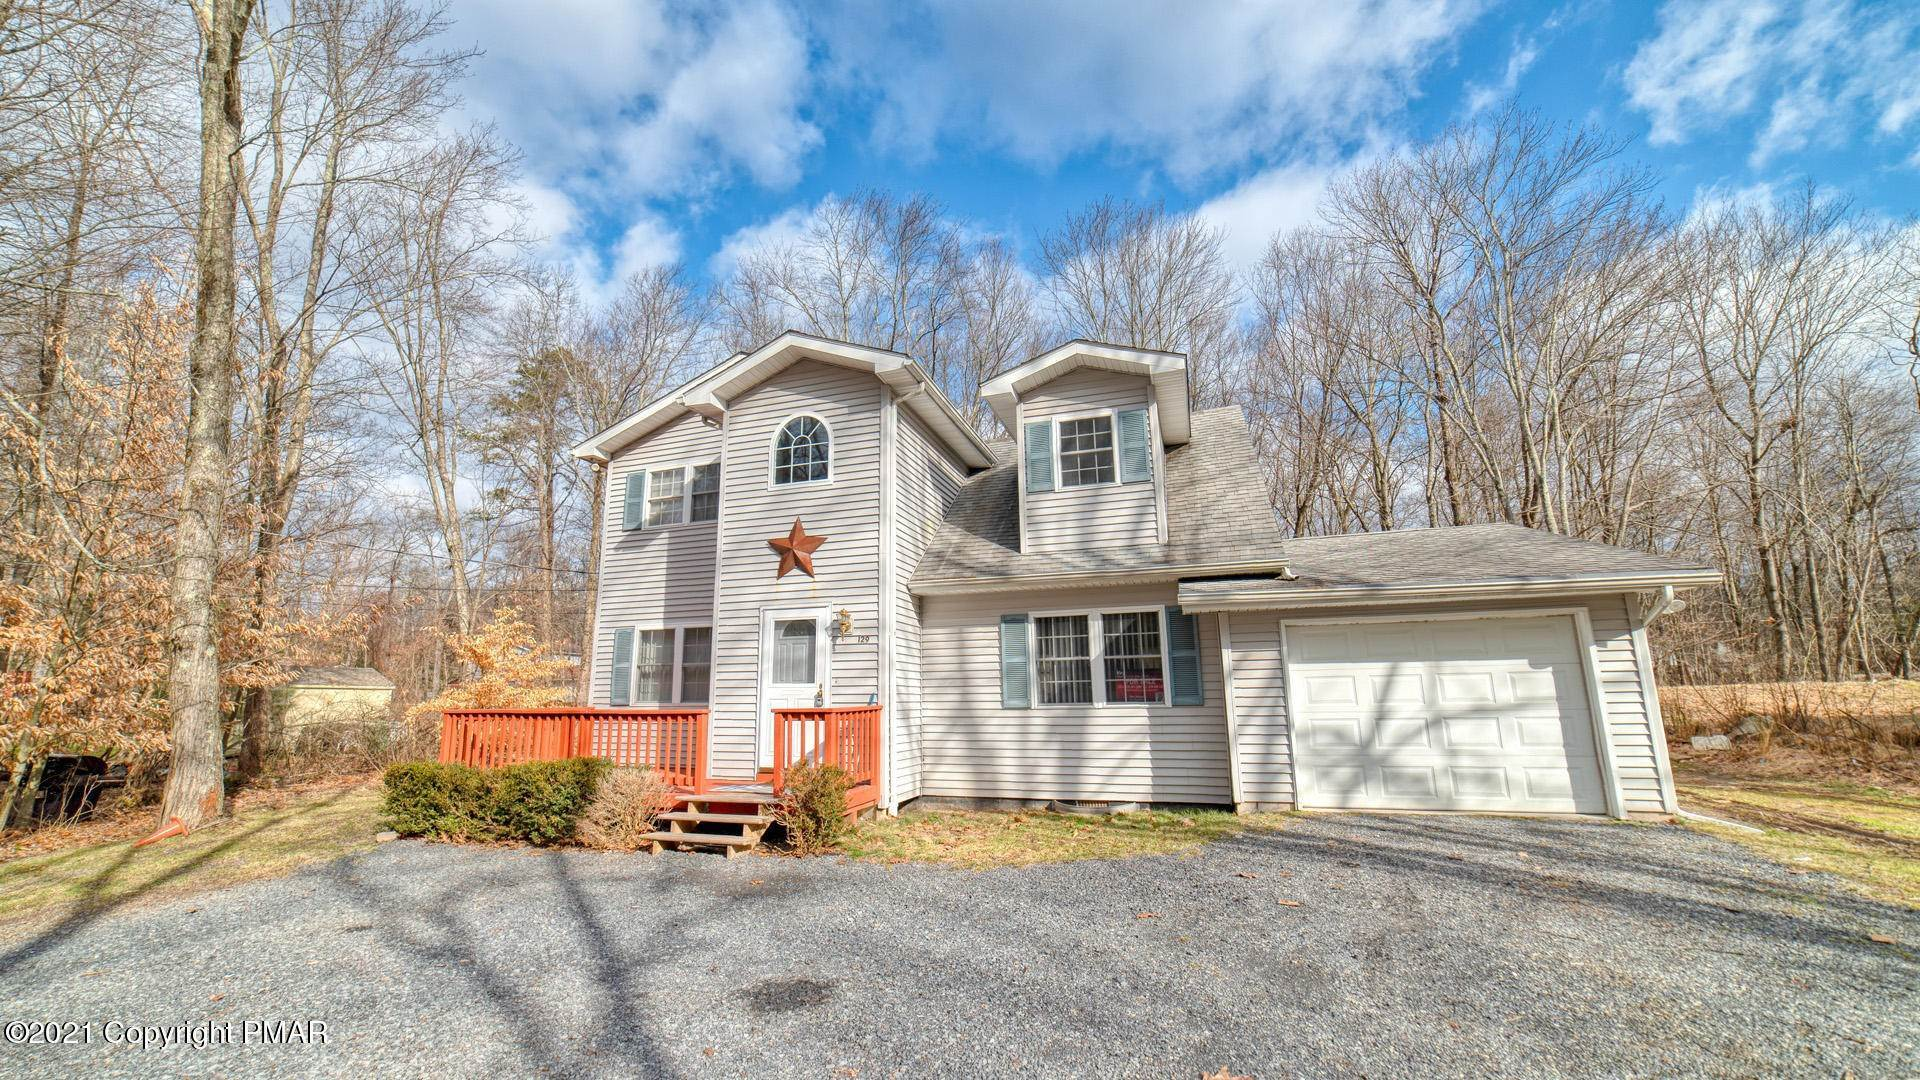 12. Single Family Homes for Sale at 129 Michelle Ln Bartonsville, Pennsylvania 18321 United States